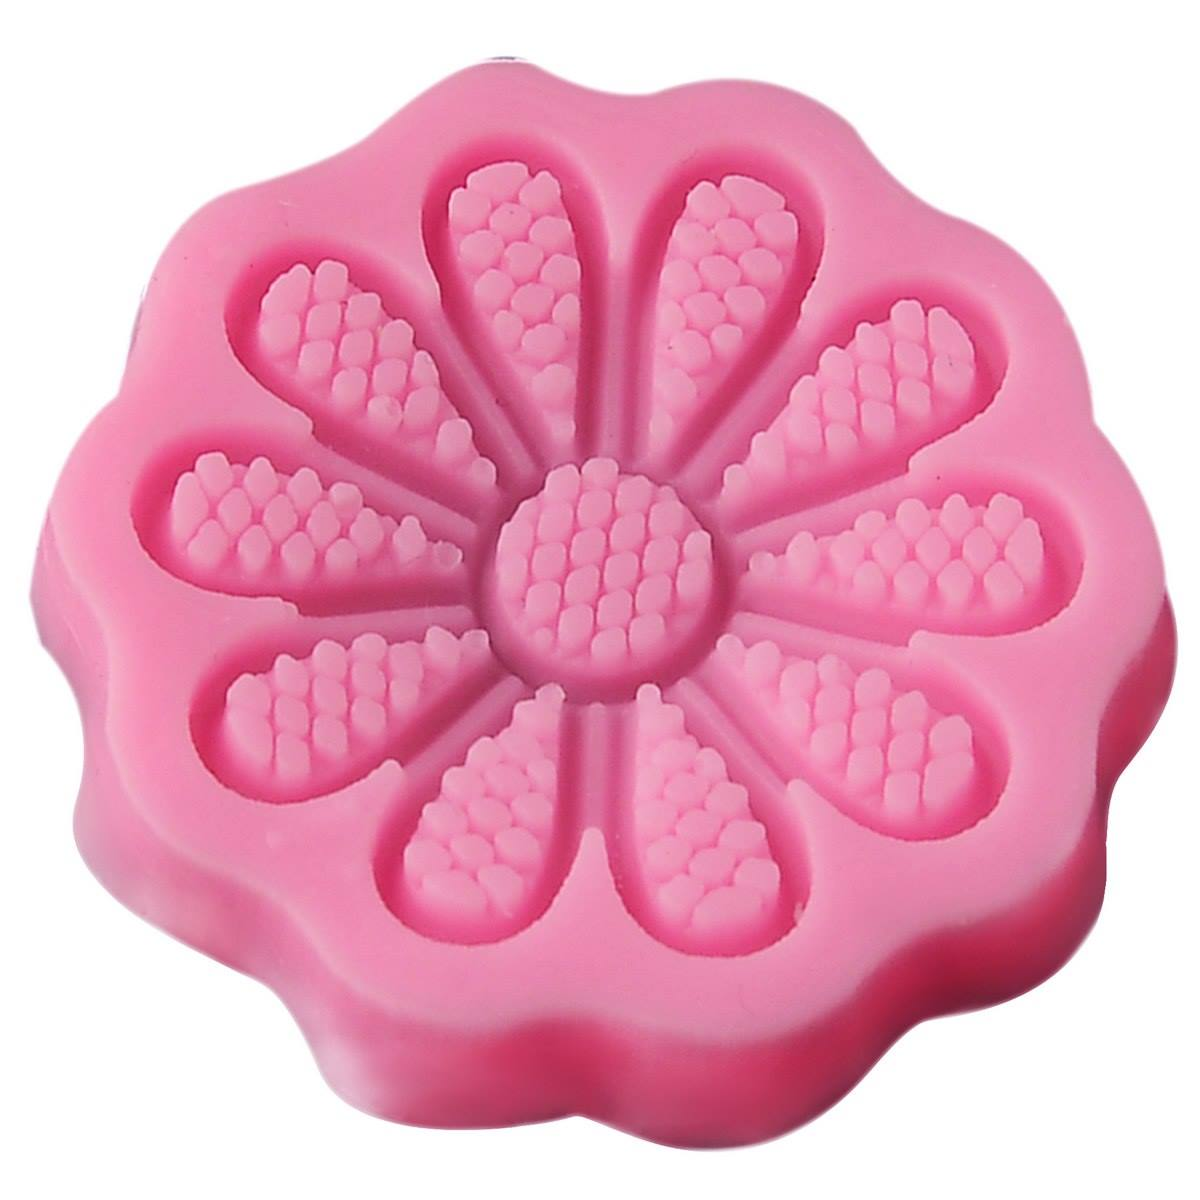 Resin Silicone Mould - Daisy Flower (5x5x0.7 cm)